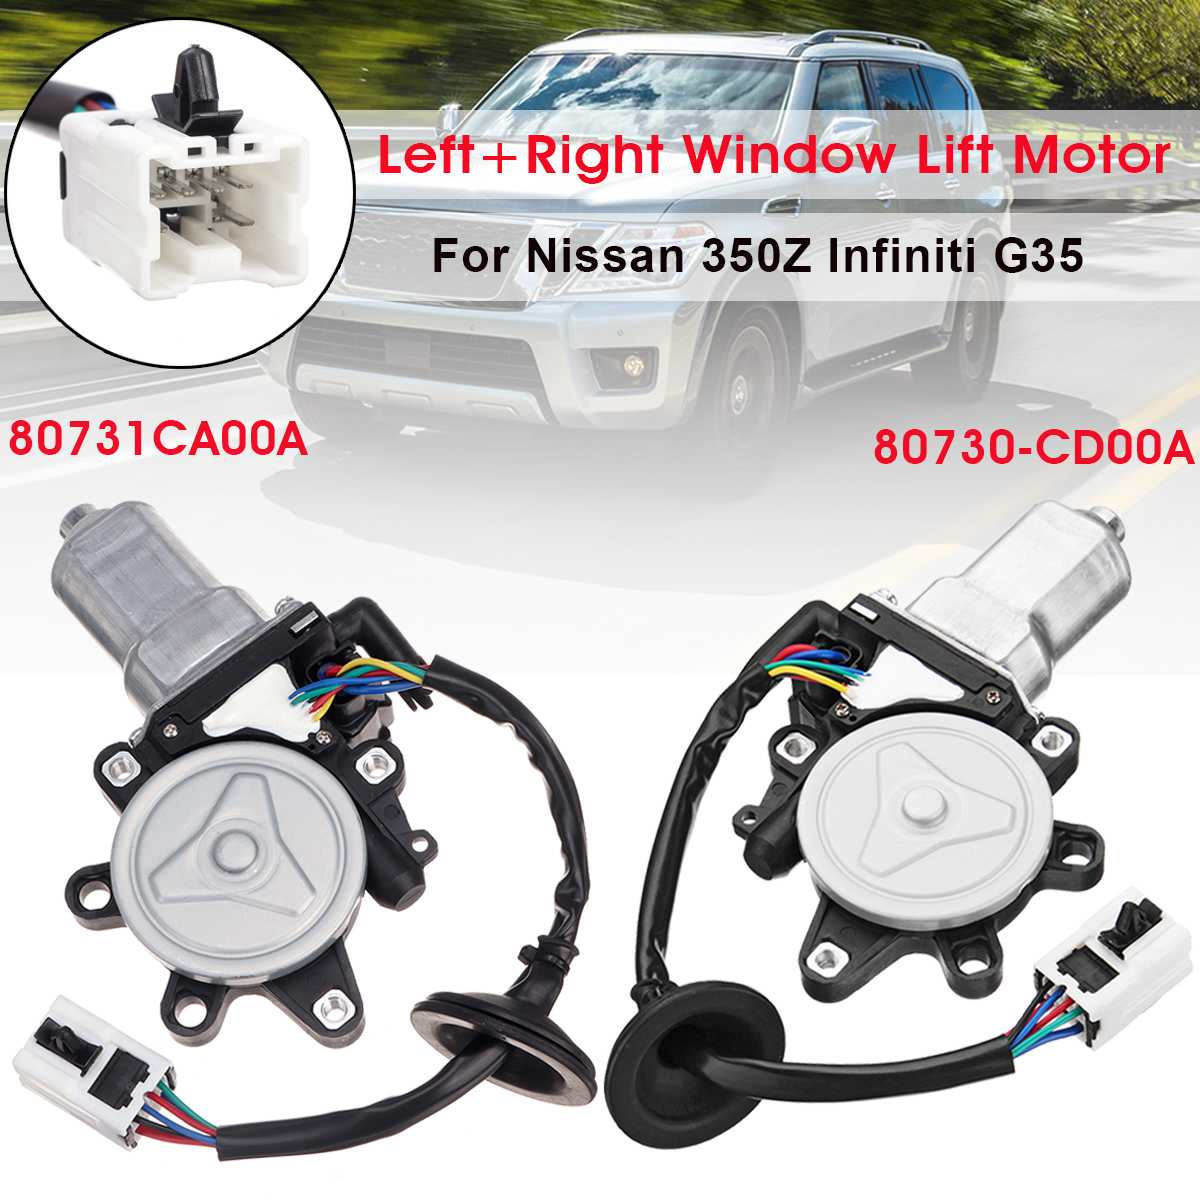 Power Front Left Right Driver Side LH Car Window Motor for Nissan Murano 2003 2004 2005 2006 2007 80731CA00APower Front Left Right Driver Side LH Car Window Motor for Nissan Murano 2003 2004 2005 2006 2007 80731CA00A